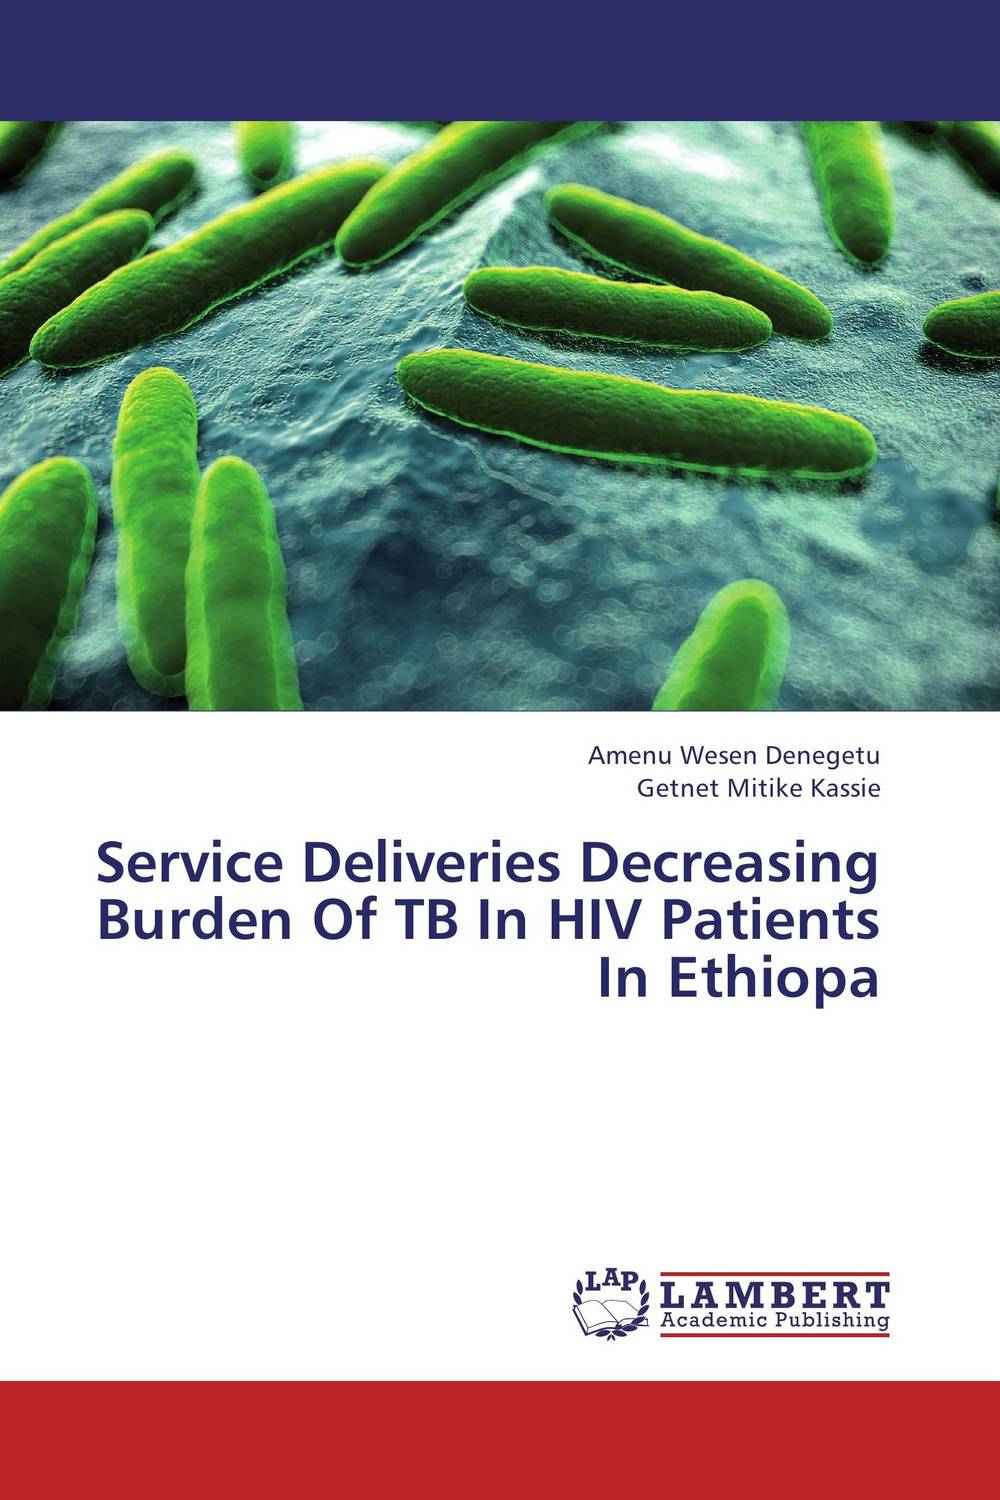 Фото Service Deliveries Decreasing Burden Of TB In HIV Patients In Ethiopa cervical cancer in amhara region in ethiopia